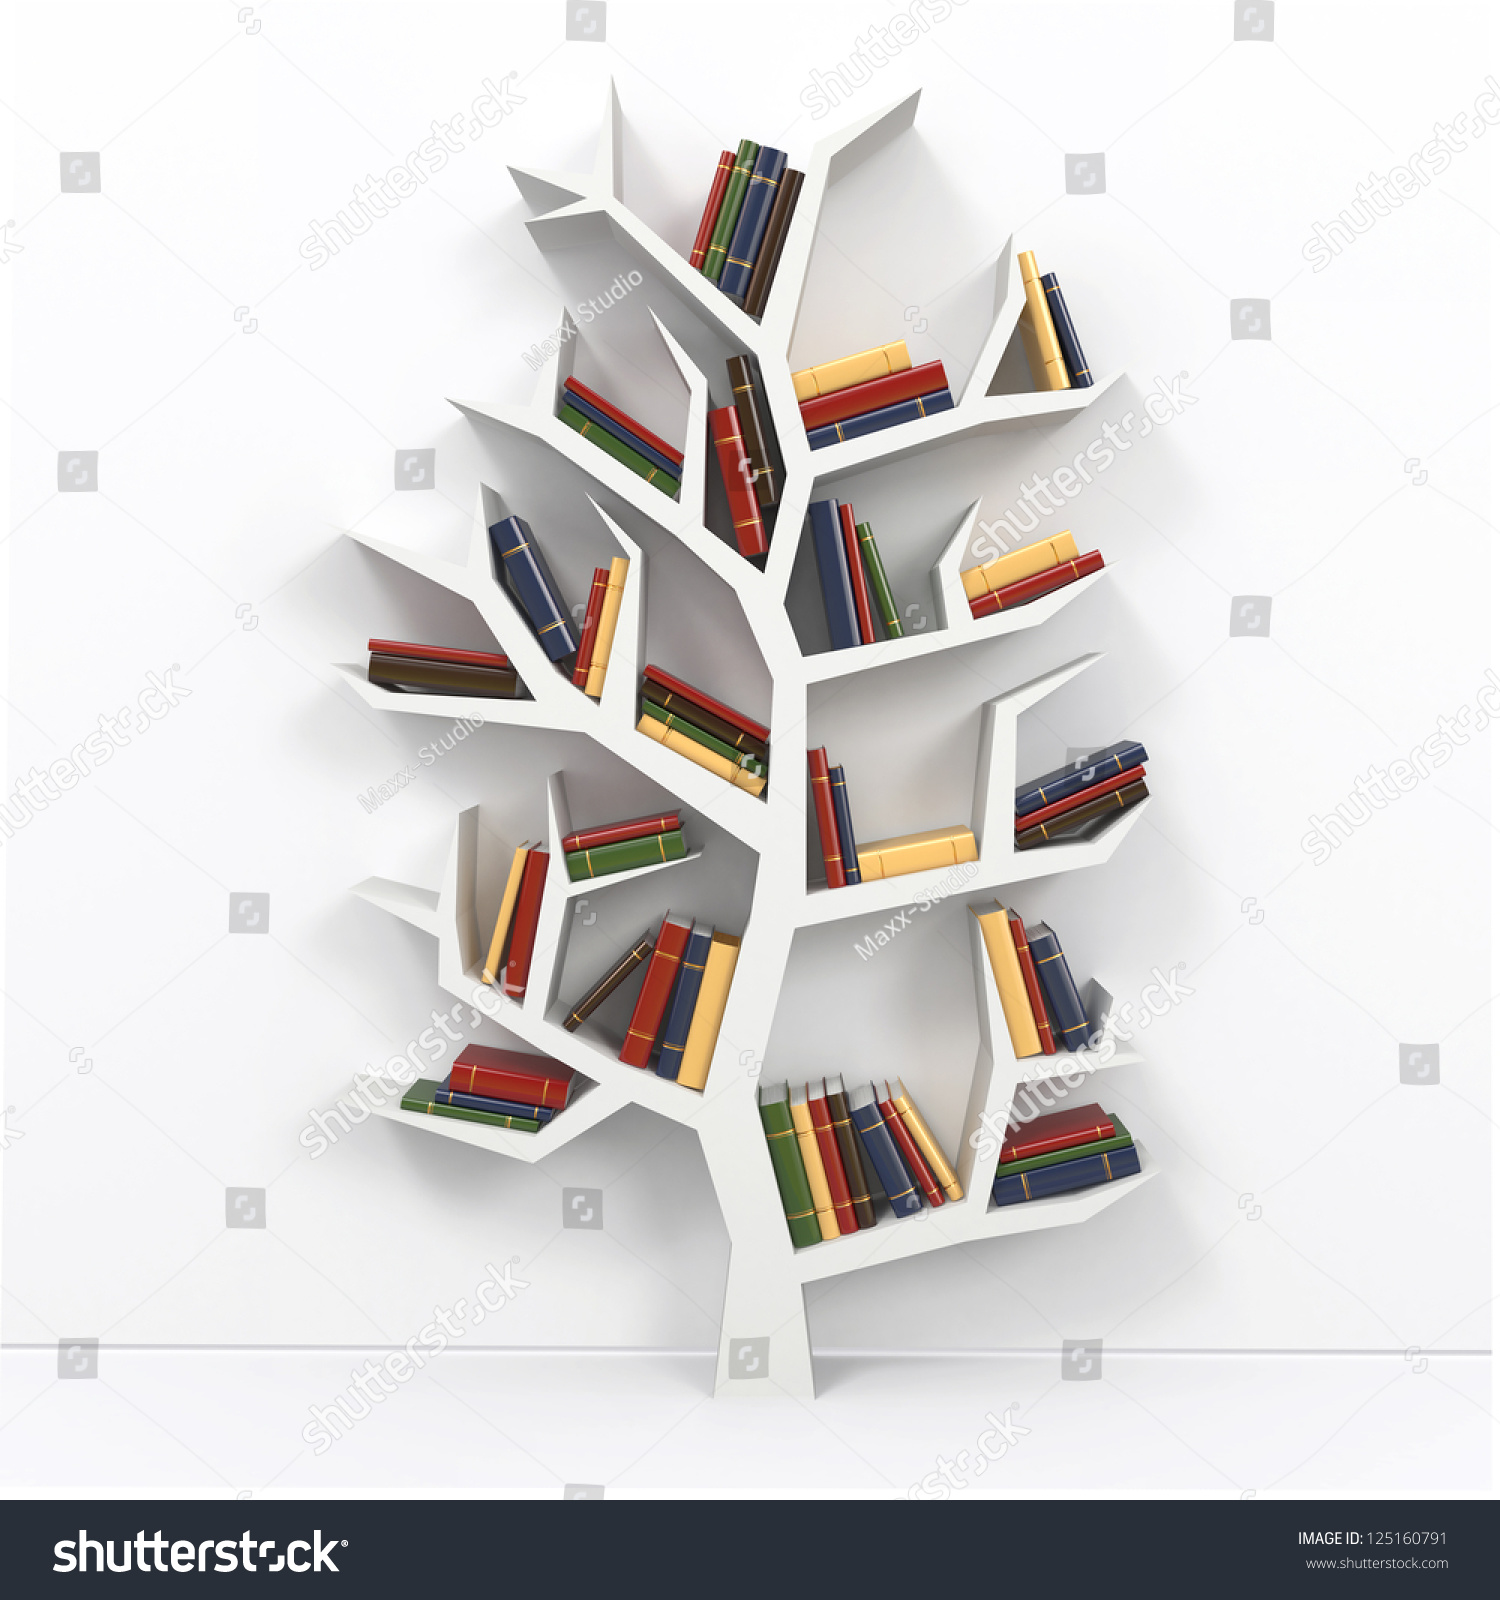 tree knowledge bookshelf on white background stock illustration  - tree of knowledge bookshelf on white background d